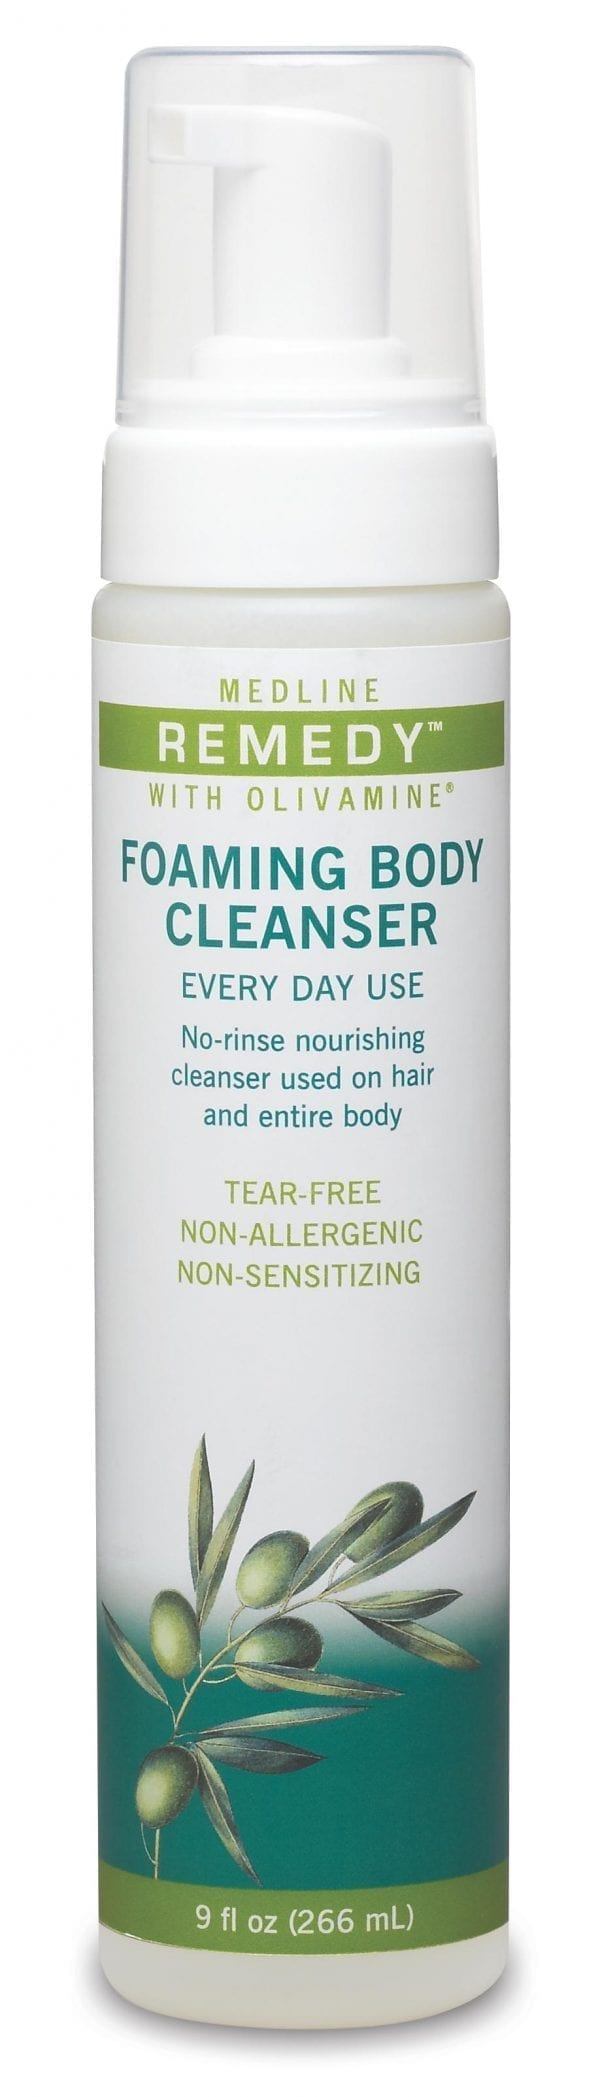 foaming body wash, easy to apply and reduce waste